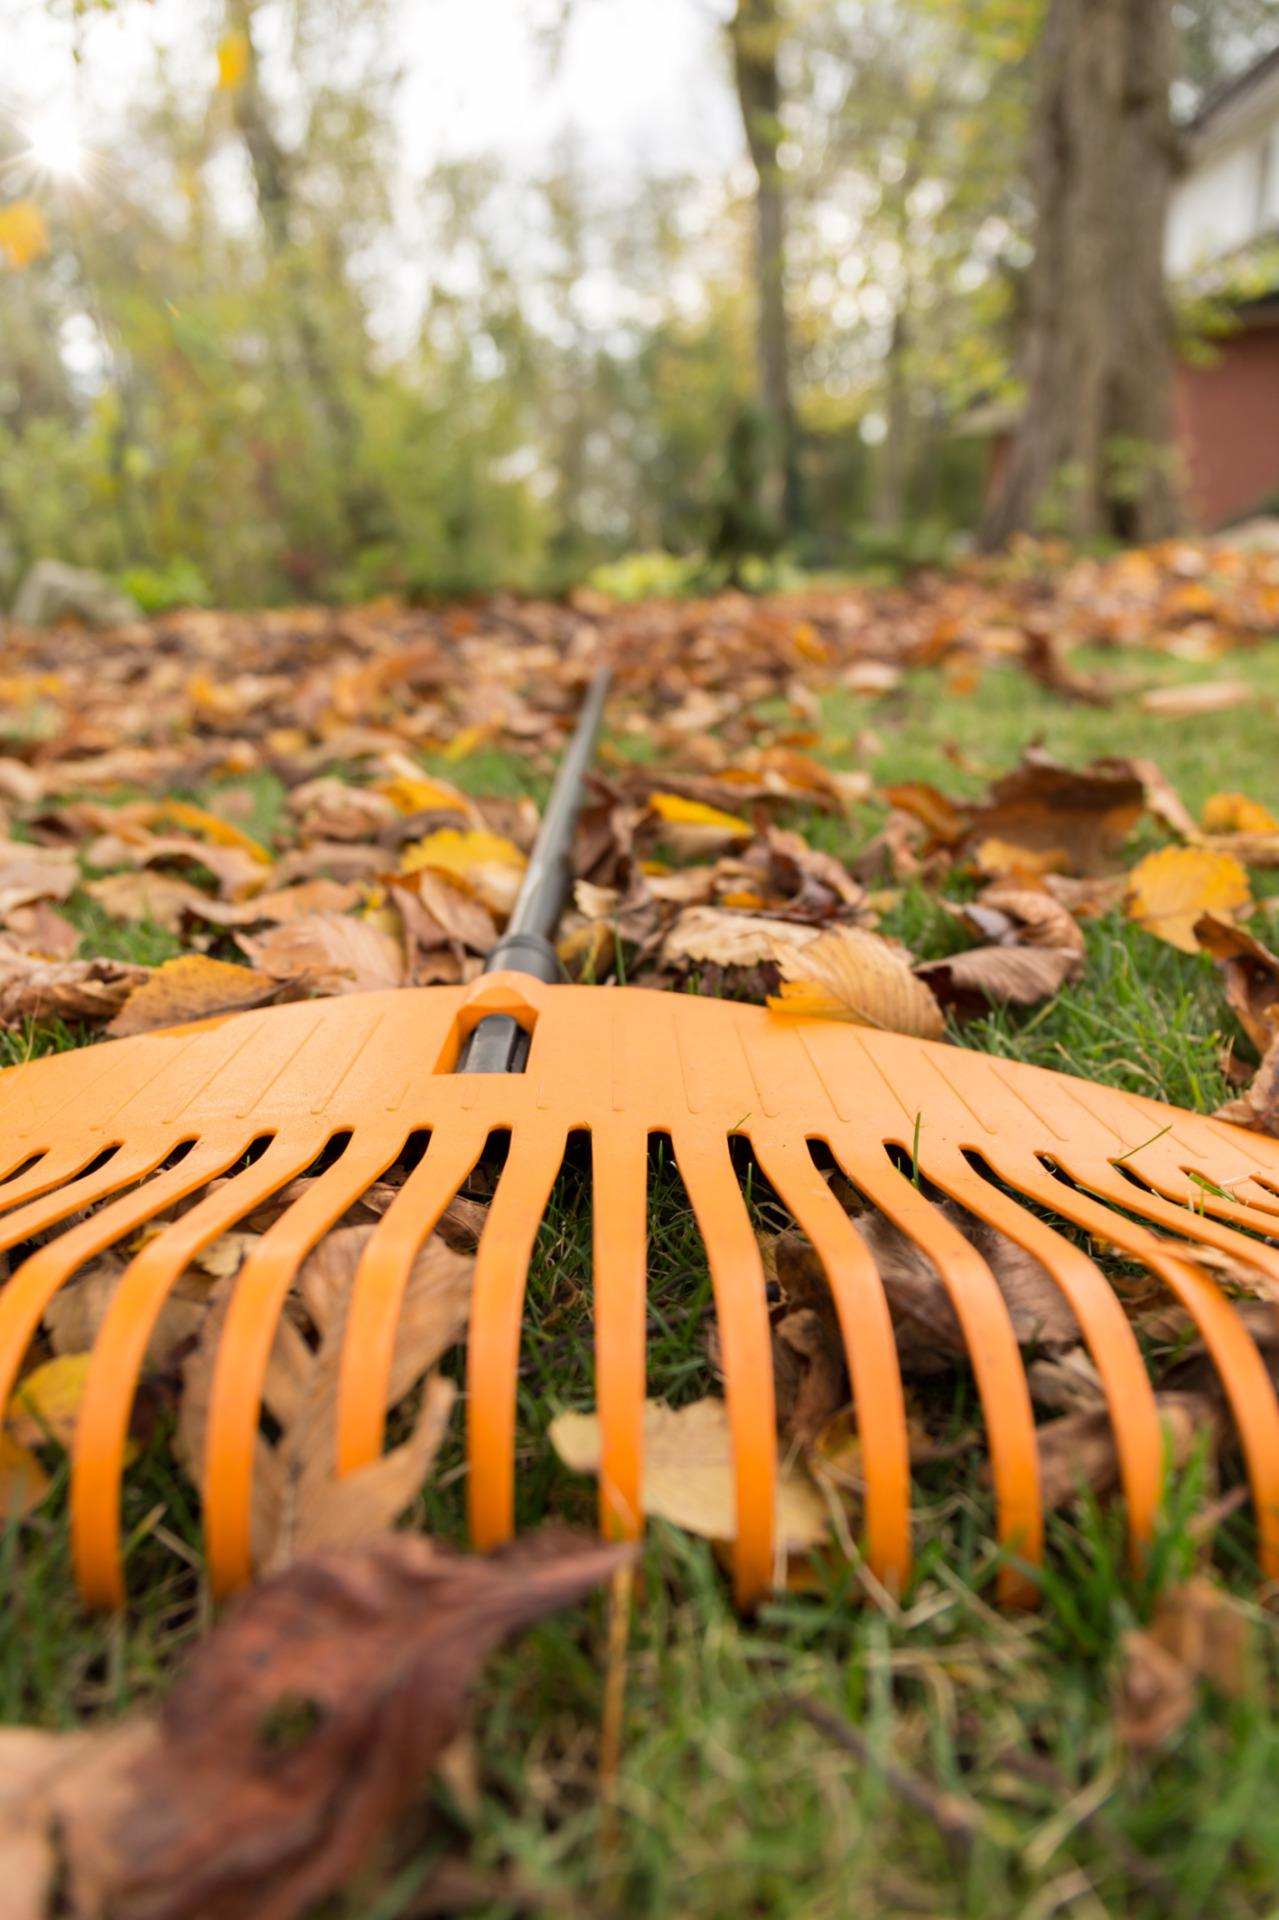 """<p>Good news for all who dread the endless chore of leaf removal: Raking has just been declared overrated, harmful, and all-around terrible by the <a href=""""http://www.nwf.org/"""" rel=""""nofollow noopener"""" target=""""_blank"""" data-ylk=""""slk:National Wildlife Federation"""" class=""""link rapid-noclick-resp"""">National Wildlife Federation</a>. <i>(Photo: Thinkstock)</i><br></p>"""